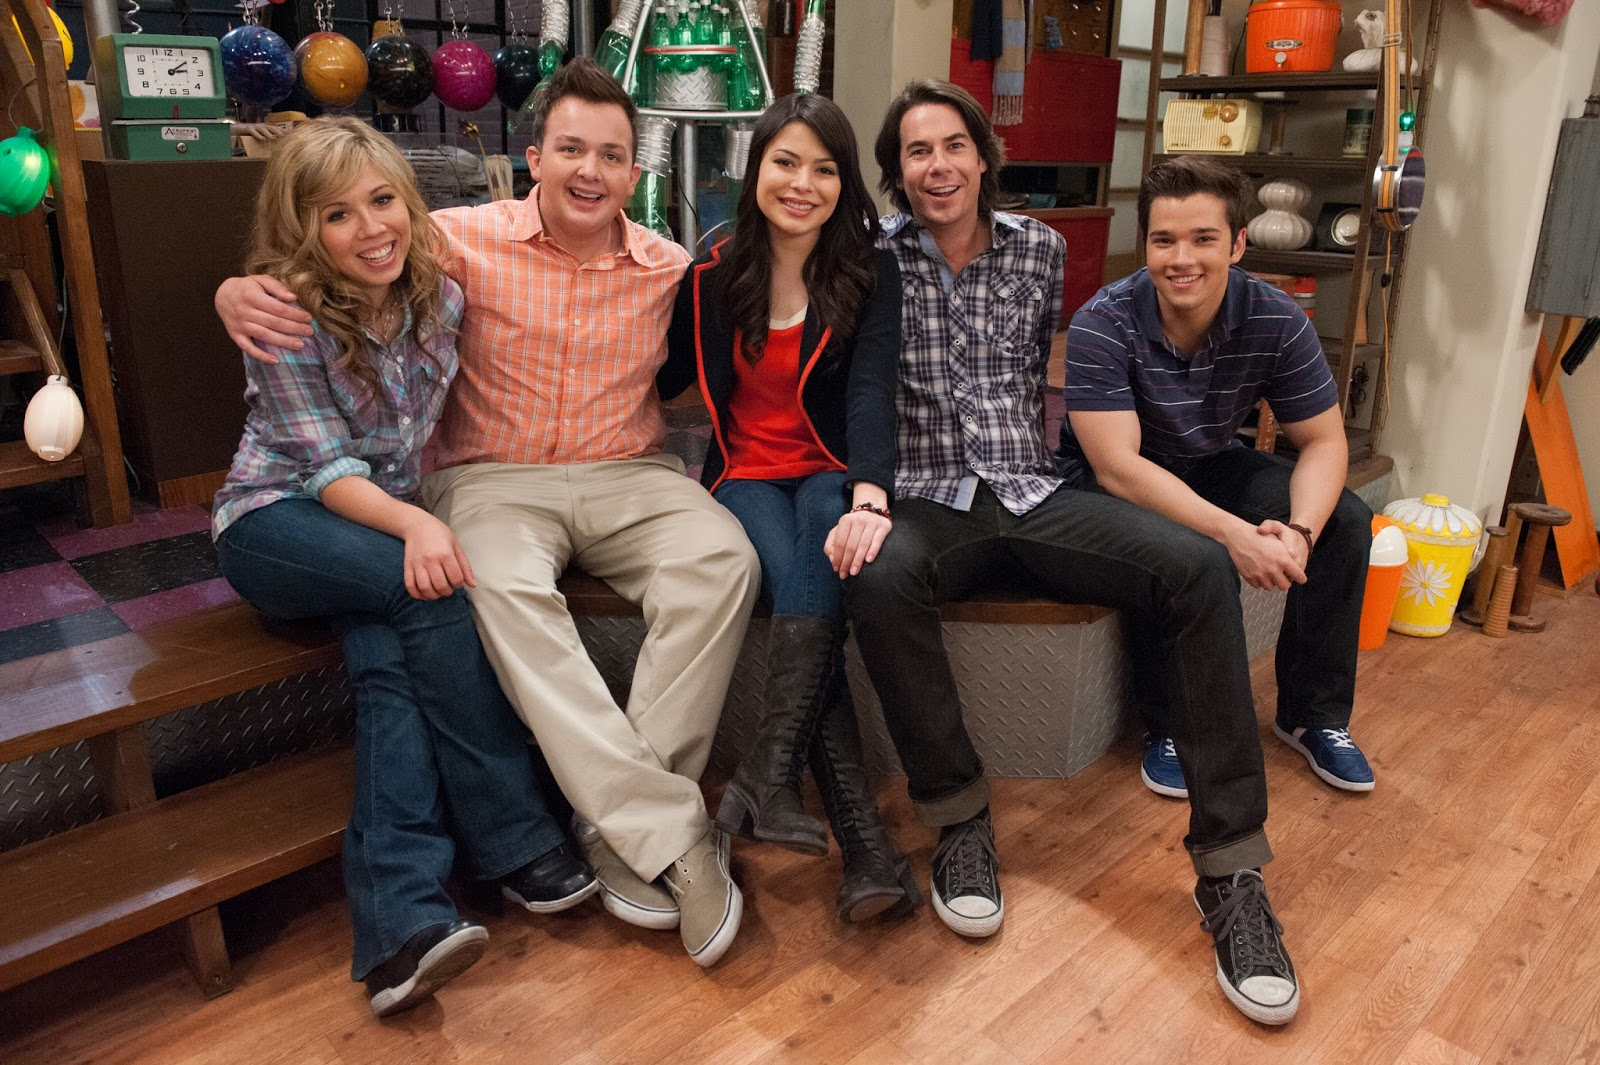 carly shay miranda cosgrove spencer shay jerry trainor sam puckettmelanie puckett jennette mccurdy freddie benson nathan kress gibby gibson - Drake And Josh Christmas Movie Cast